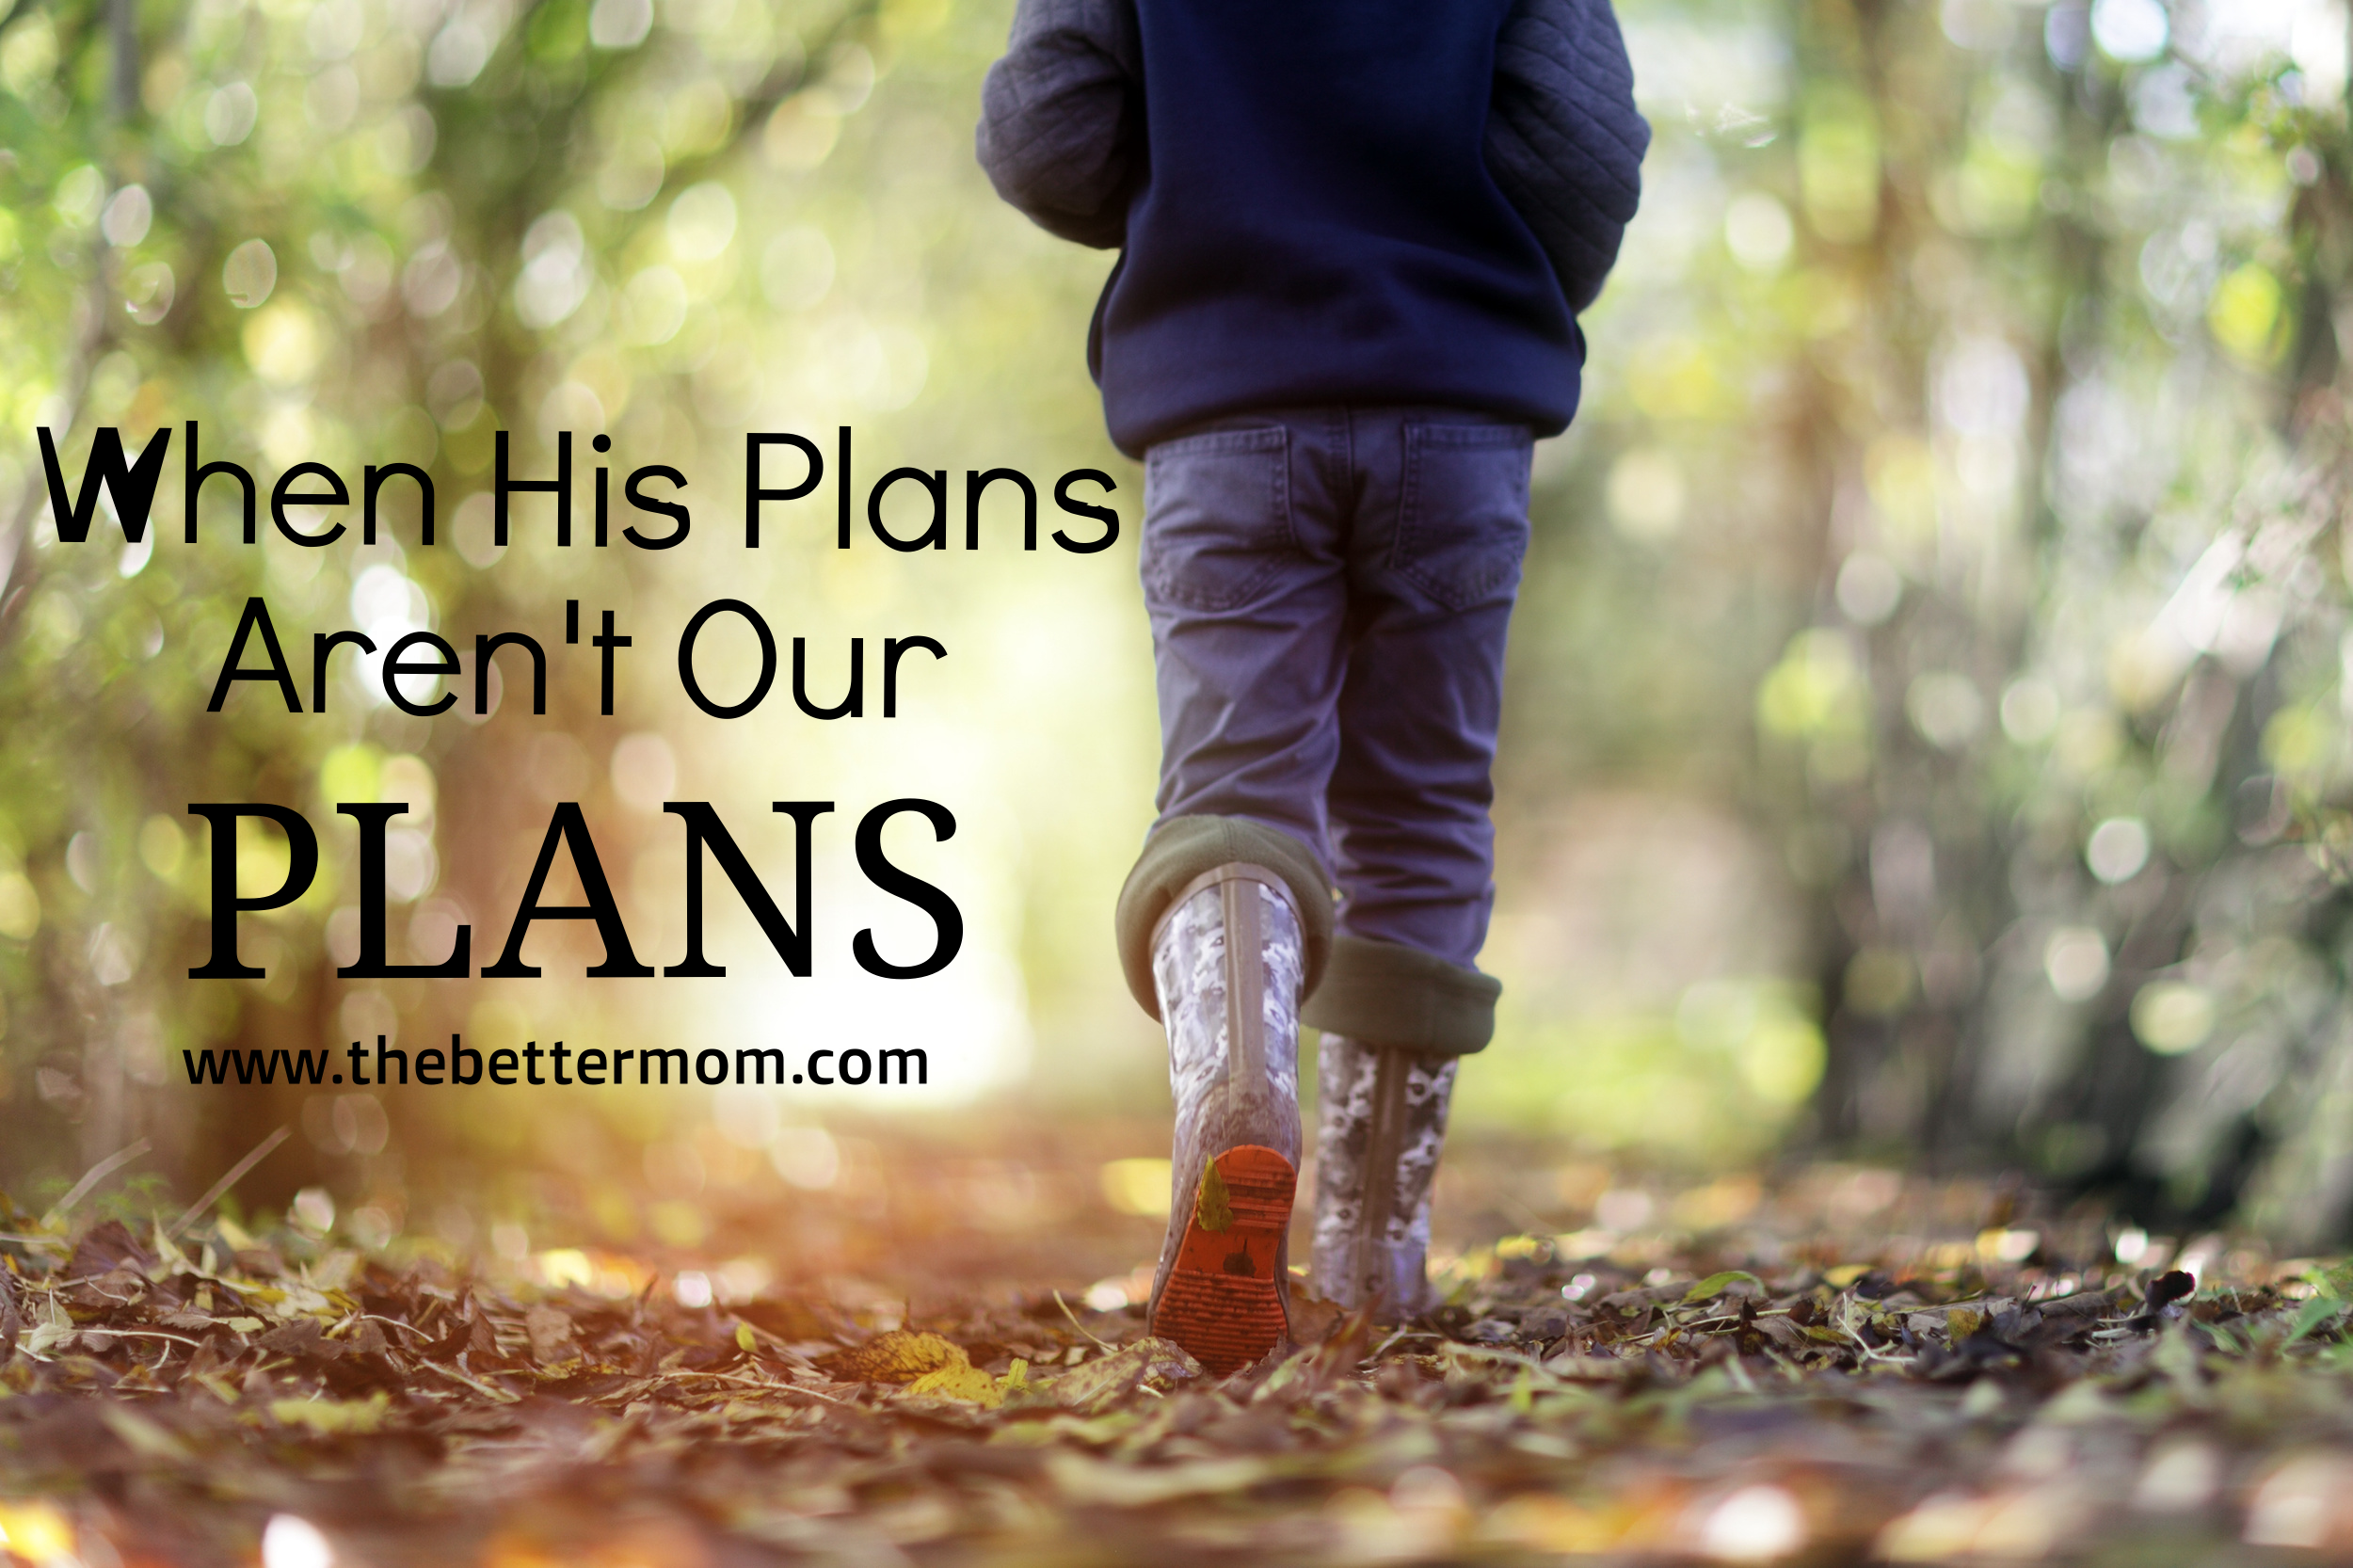 Often, our plans don't align with what God has for us, or somewhere along the way, as things change, we realize the outcome is not anything like we'd imagined. Can you still trust God when things go horribly wrong? If you are questioning, wrestling, or wondering about how your own life circumstances fit into God's plan, this post is for you.